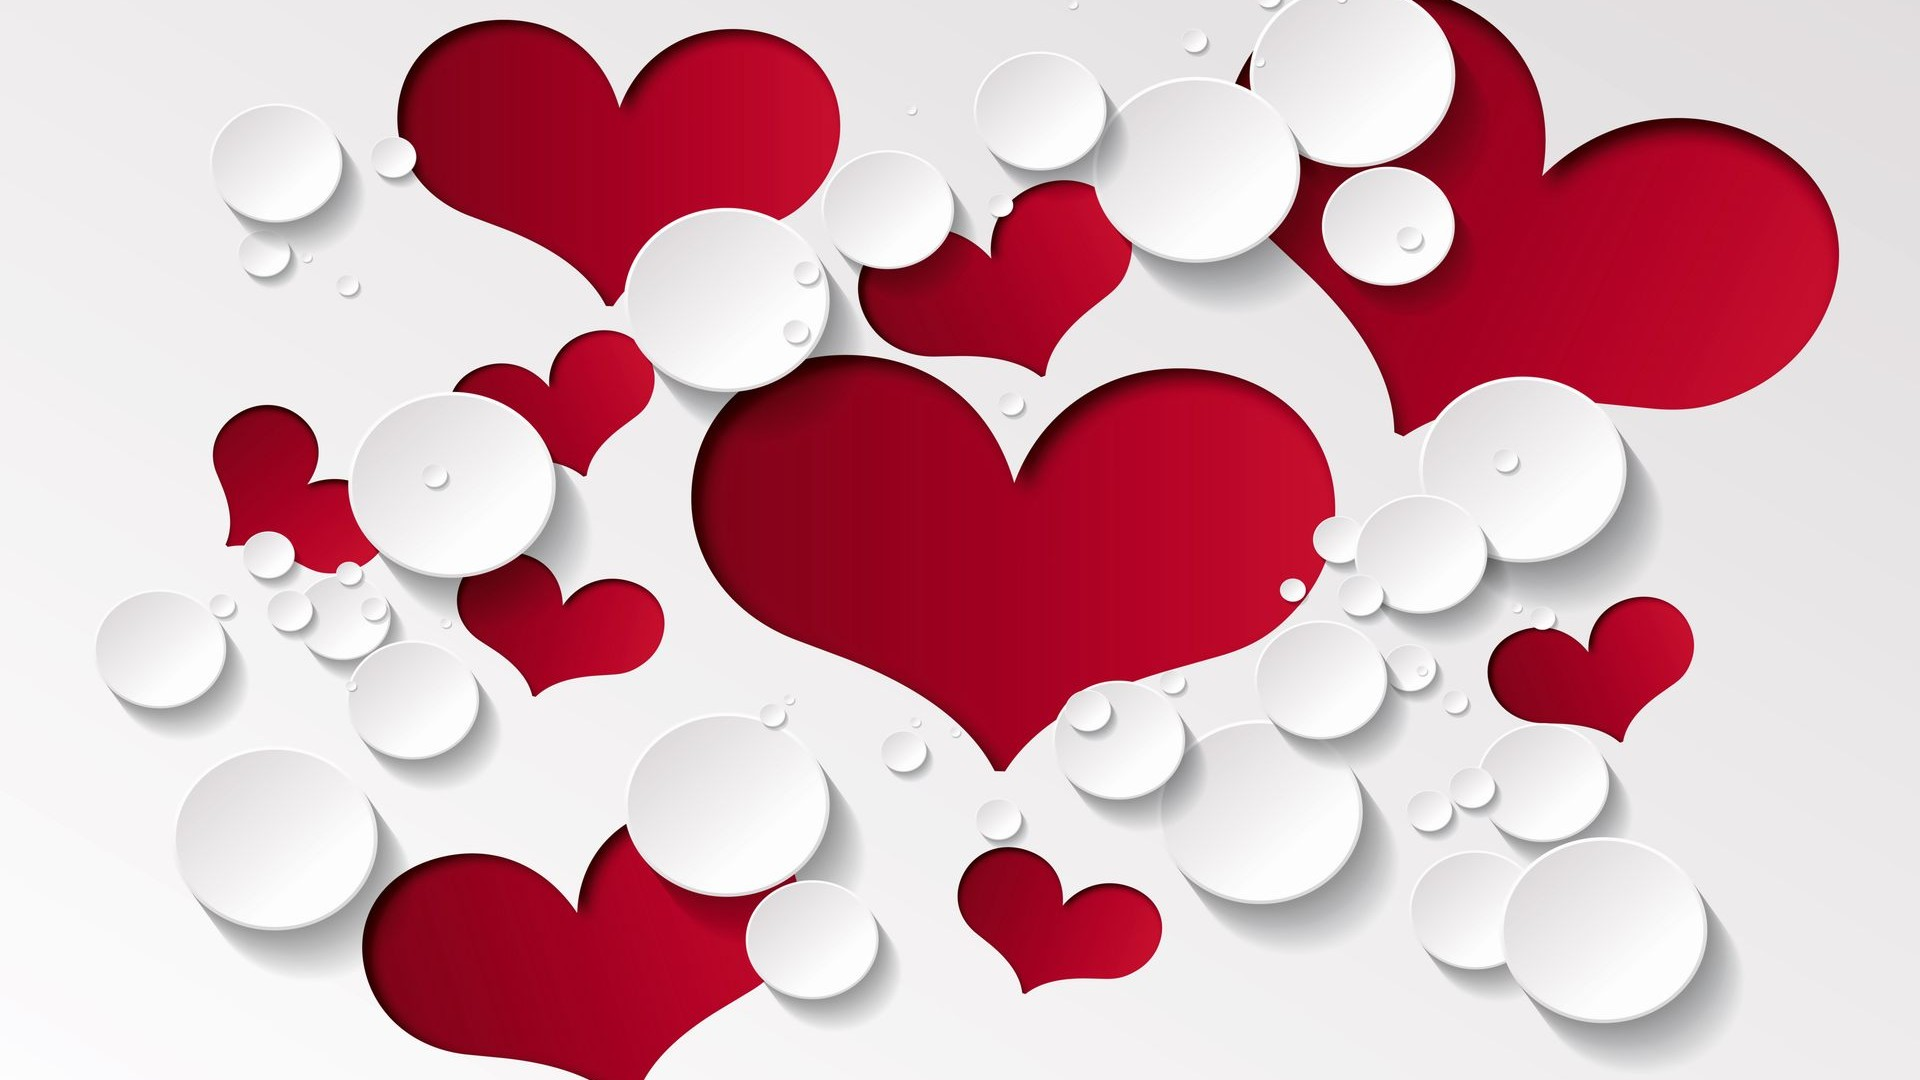 paper-heart-art-wallpaper-1920×1080